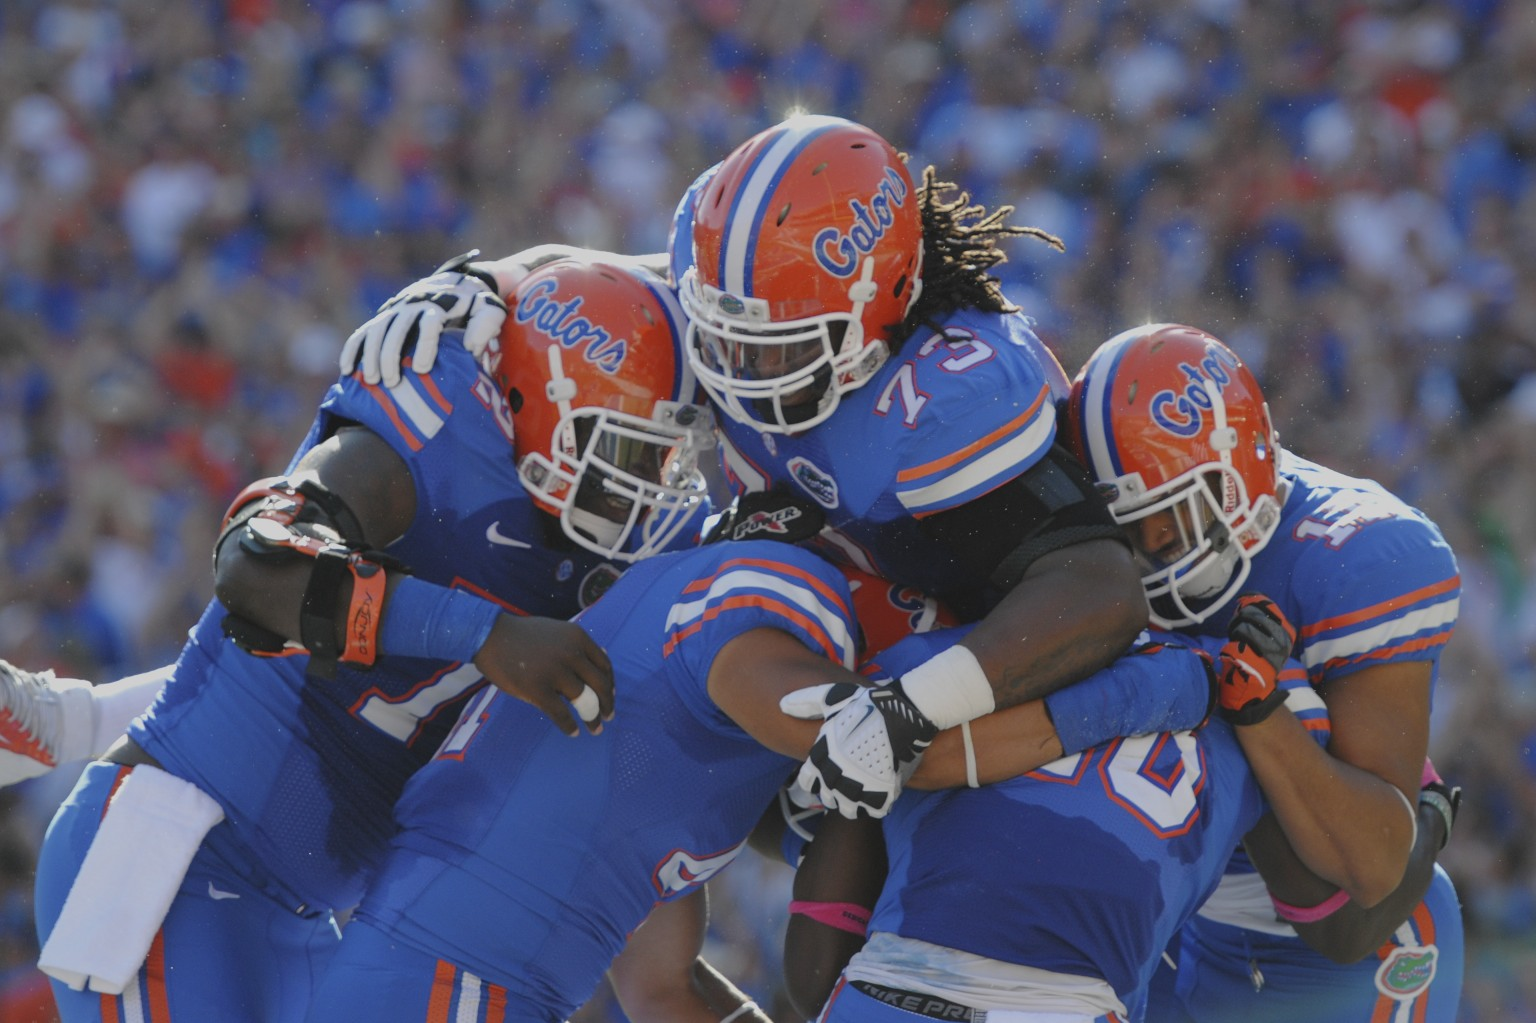 Florida players celebrate after their first touchdown in the first minute of the game against South Carolina Saturday afternoon.